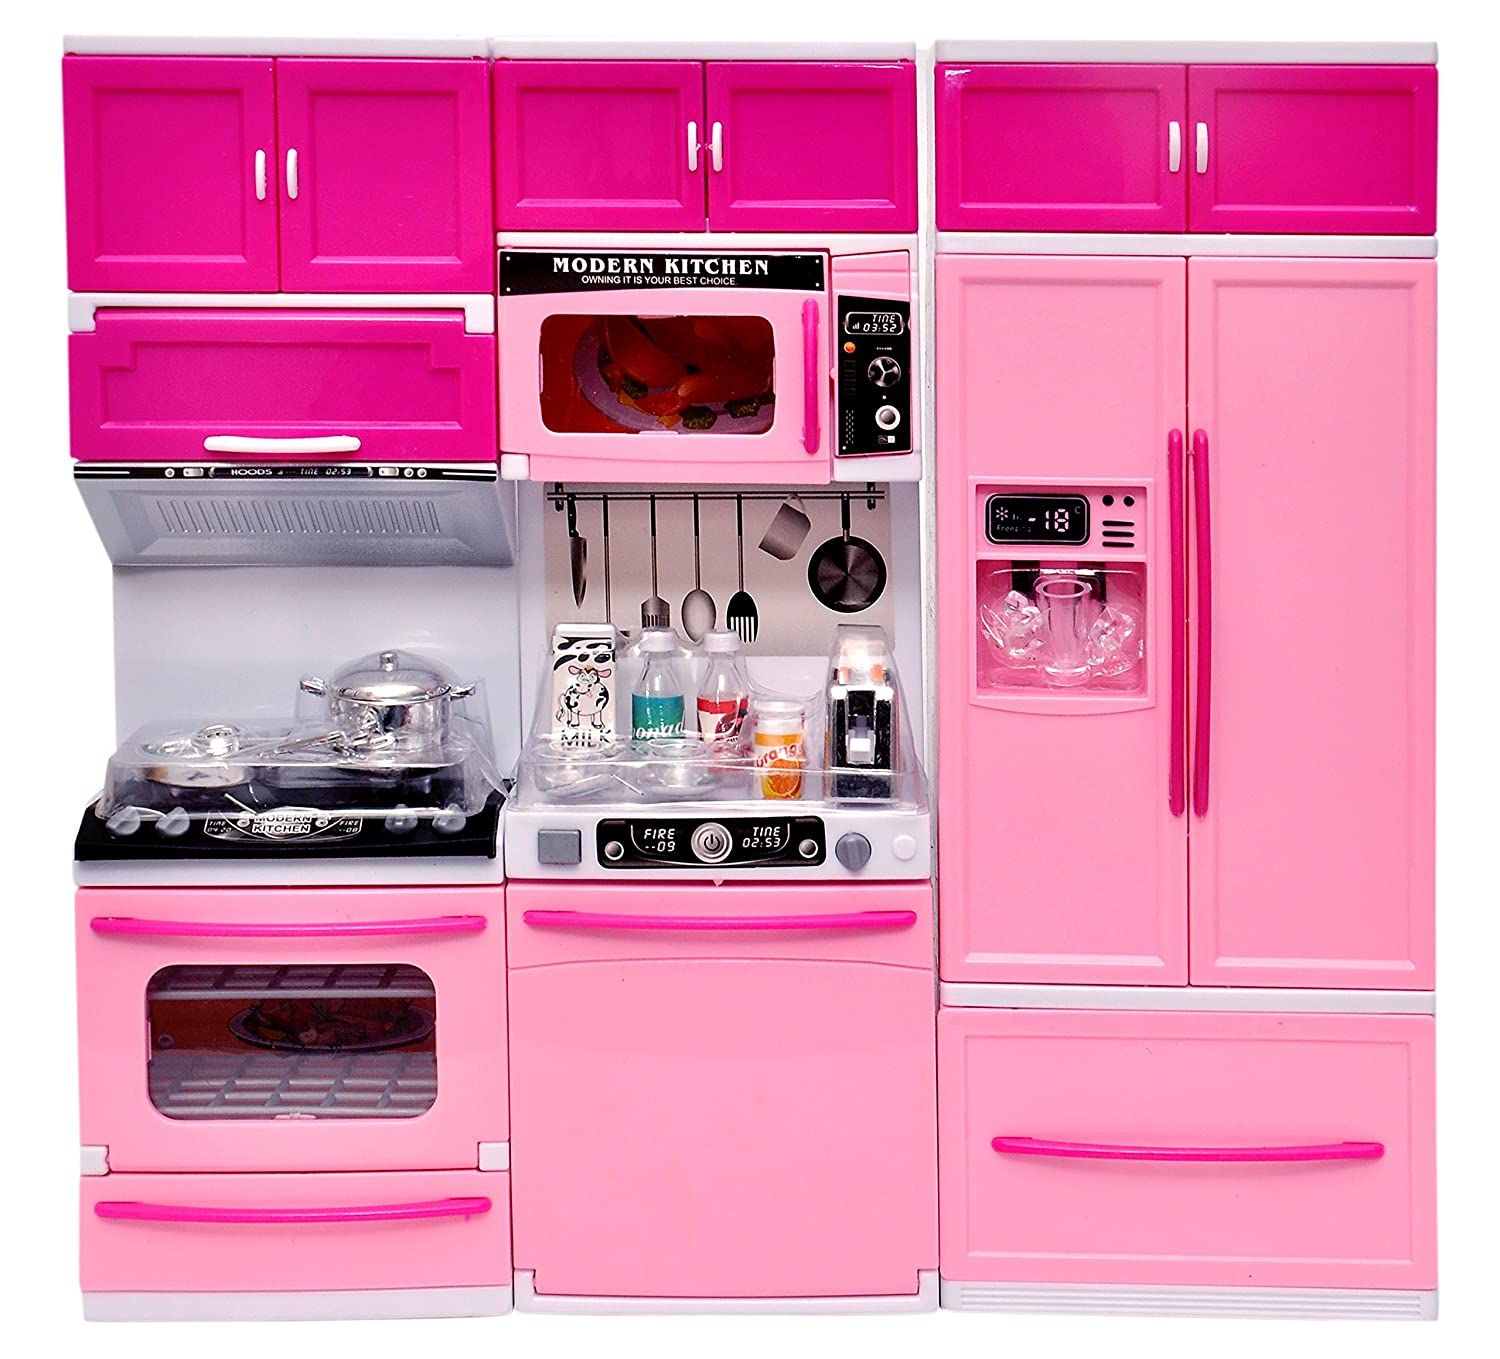 Buy Toyshine Modern Kitchen Toy Set Battery Operated Play Set Pink Online At Low Prices In India Amazon In